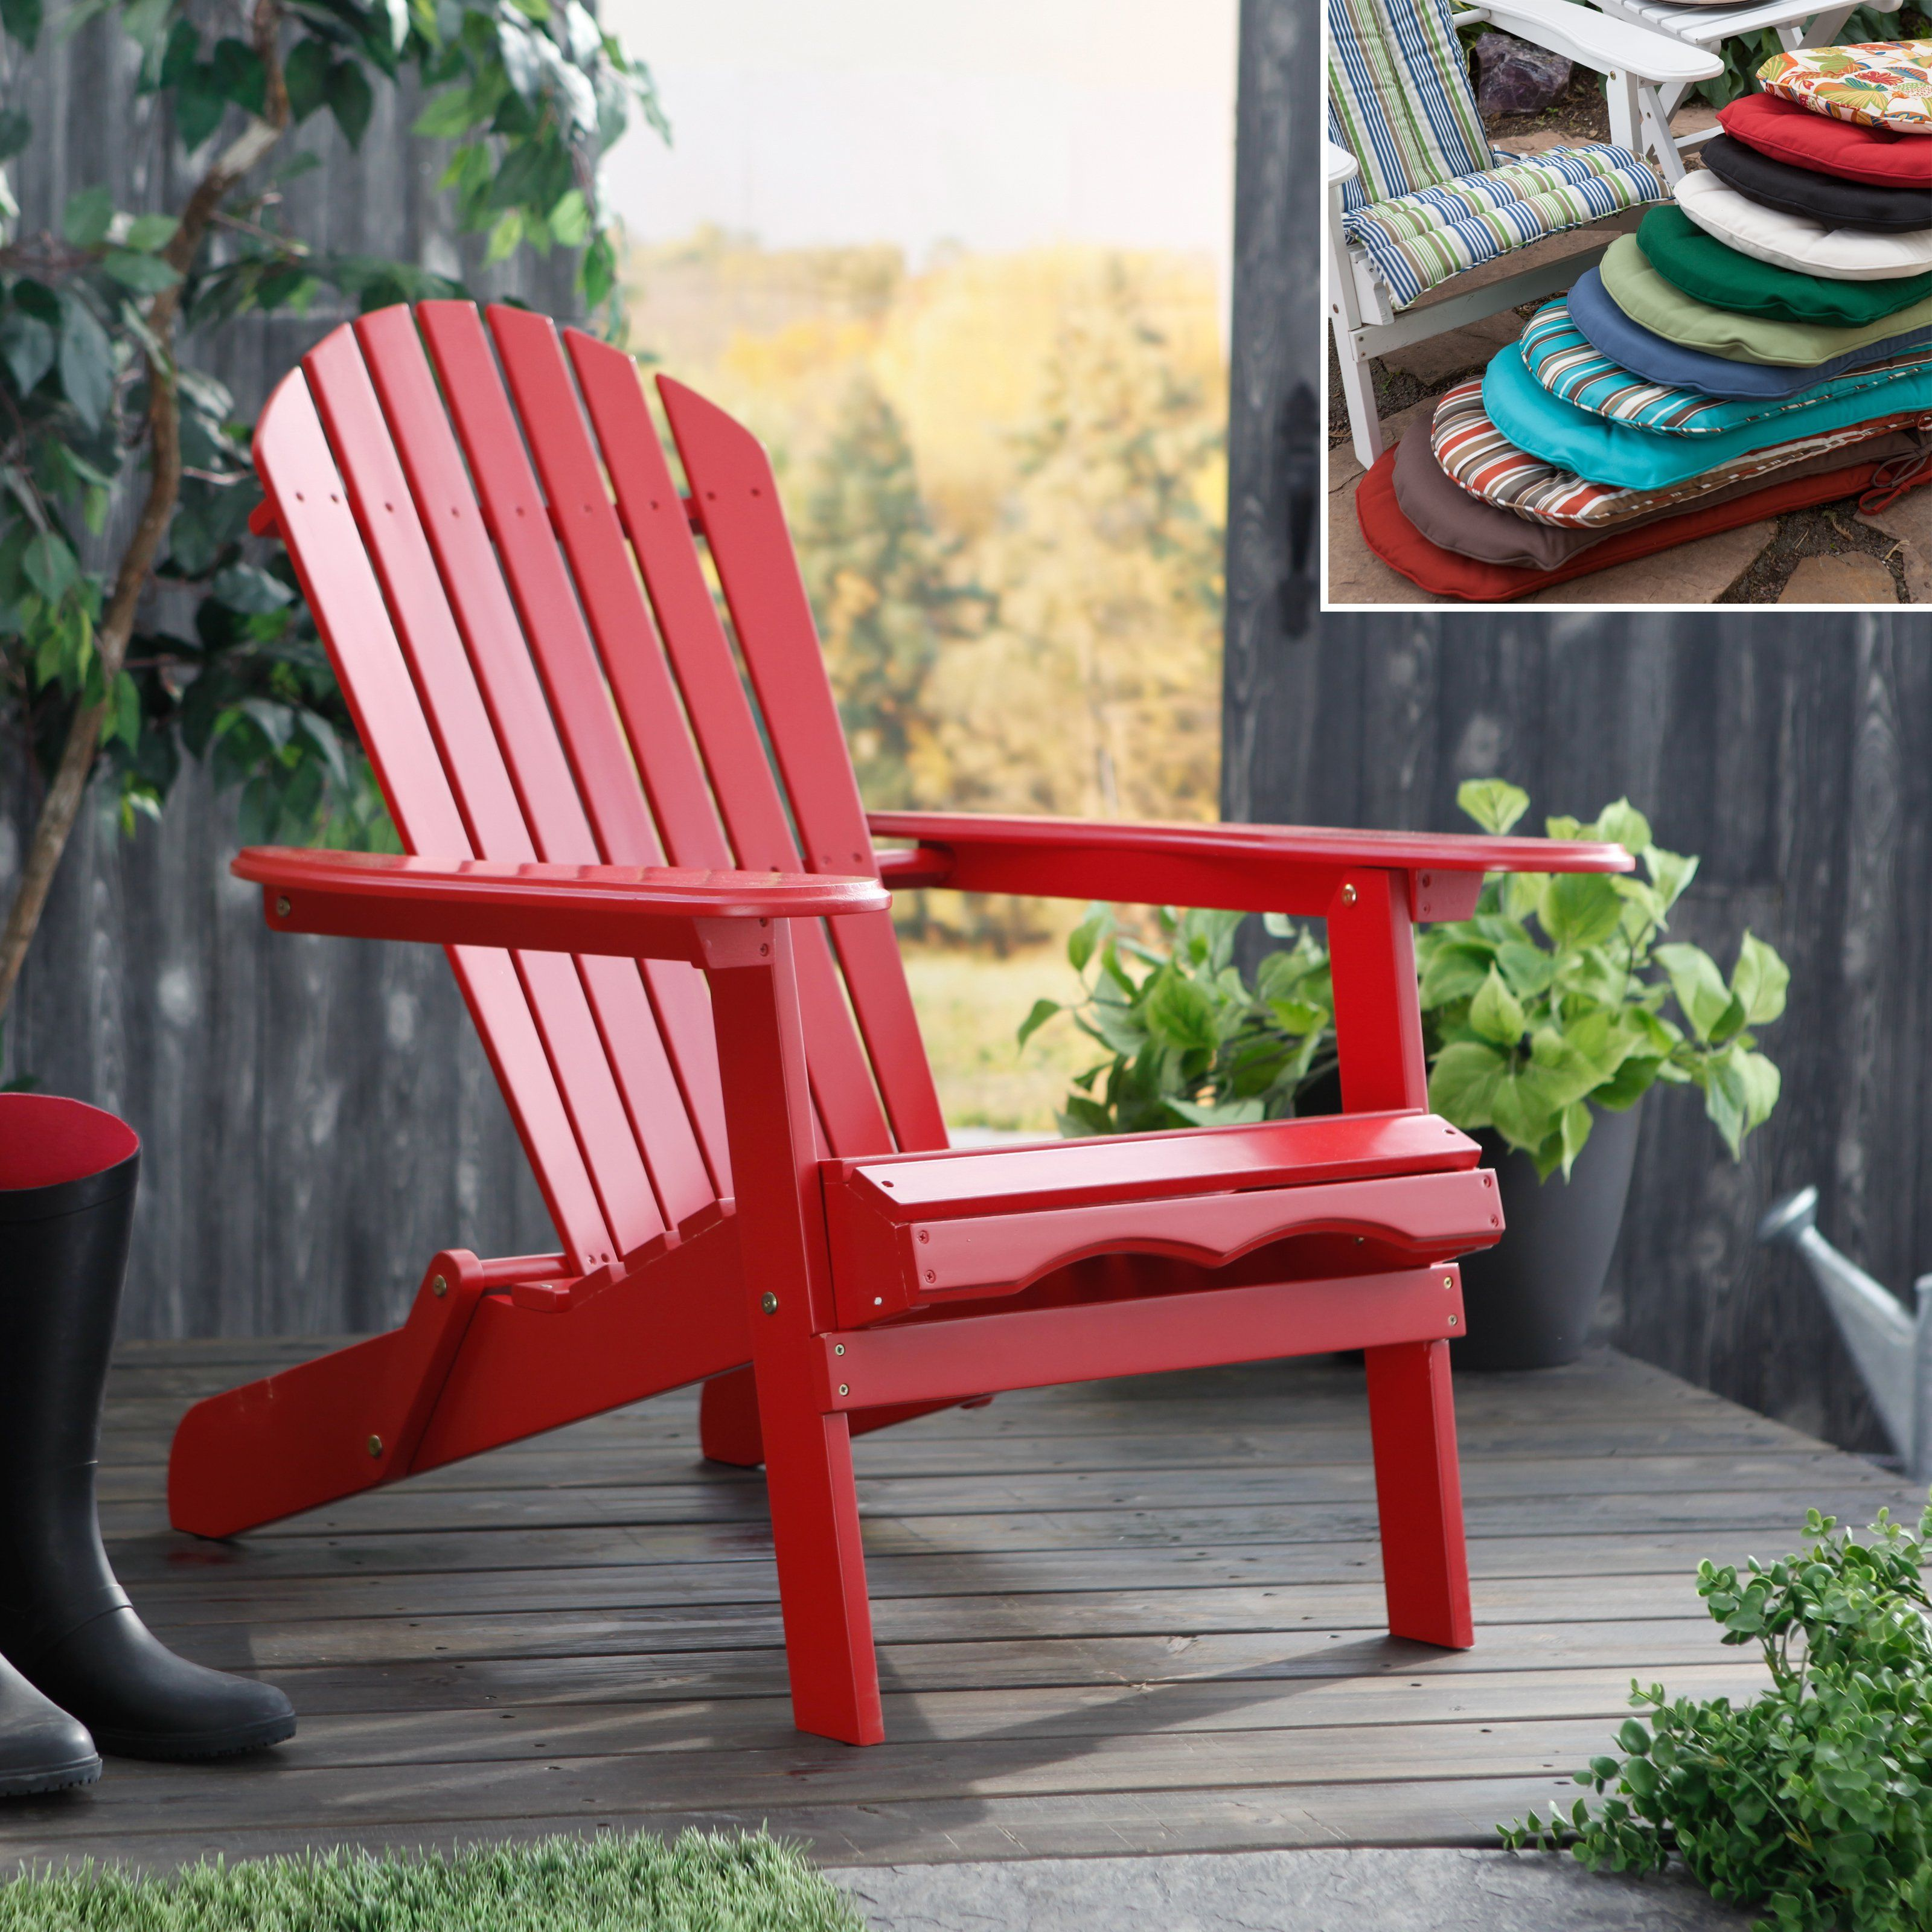 Outdoor Cape Cod Foldable Red Adirondack Chair With